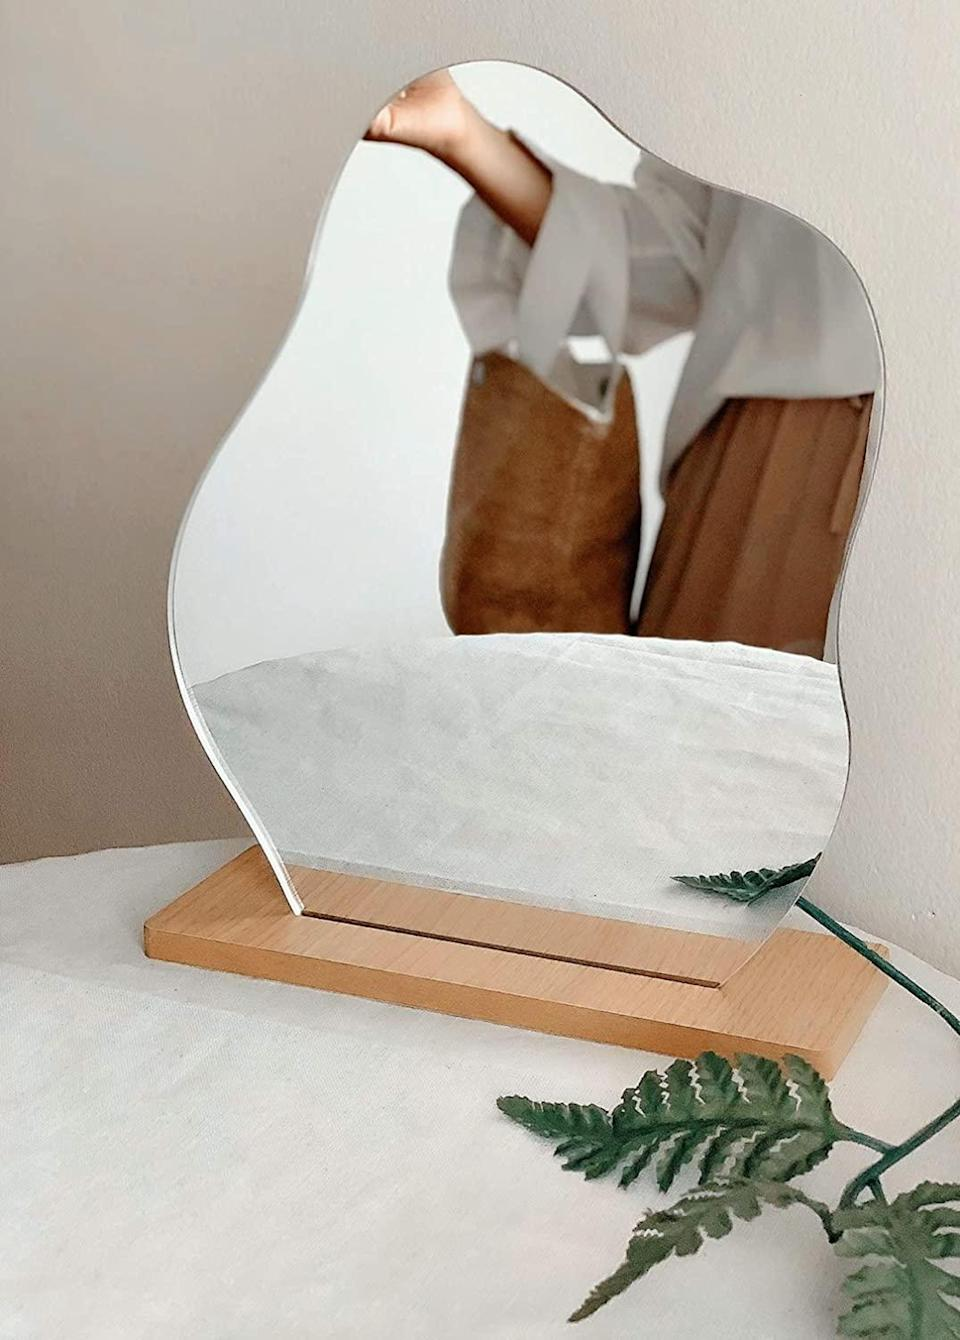 """<h3>Frameless Cloud-Shaped Mirror & Stand</h3><br>Complete the aforementioned dreamy vanity setup with this wavy cloud-shaped gem. <br><br><strong>All Things Shared</strong> Frameless Cloud-Shaped Mirror & Stand, $, available at <a href=""""https://amzn.to/3bERwJz"""" rel=""""nofollow noopener"""" target=""""_blank"""" data-ylk=""""slk:Amazon"""" class=""""link rapid-noclick-resp"""">Amazon</a>"""